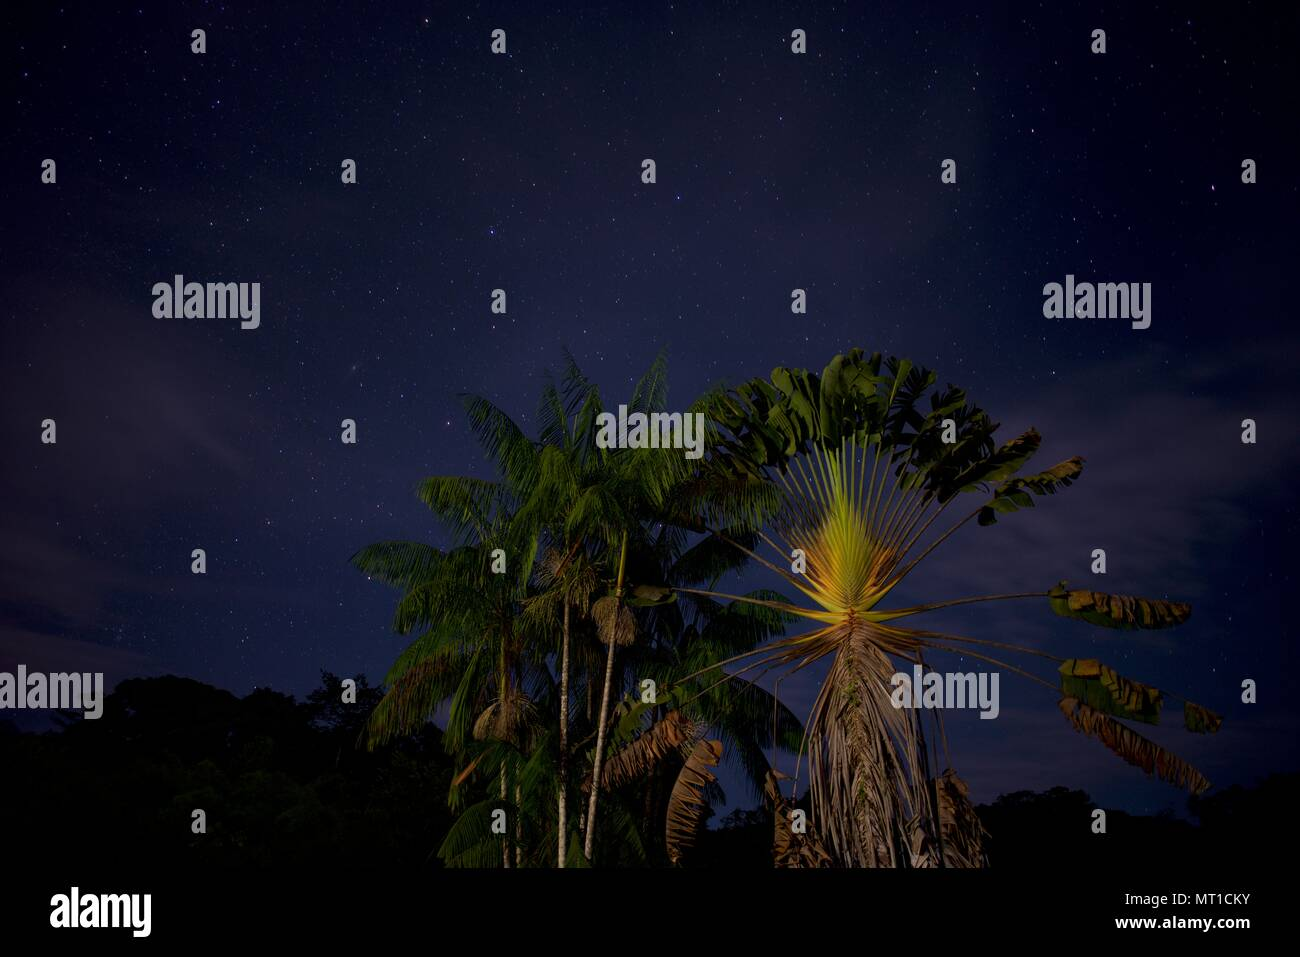 Symmetrical palm tree on a starry night - Stock Image